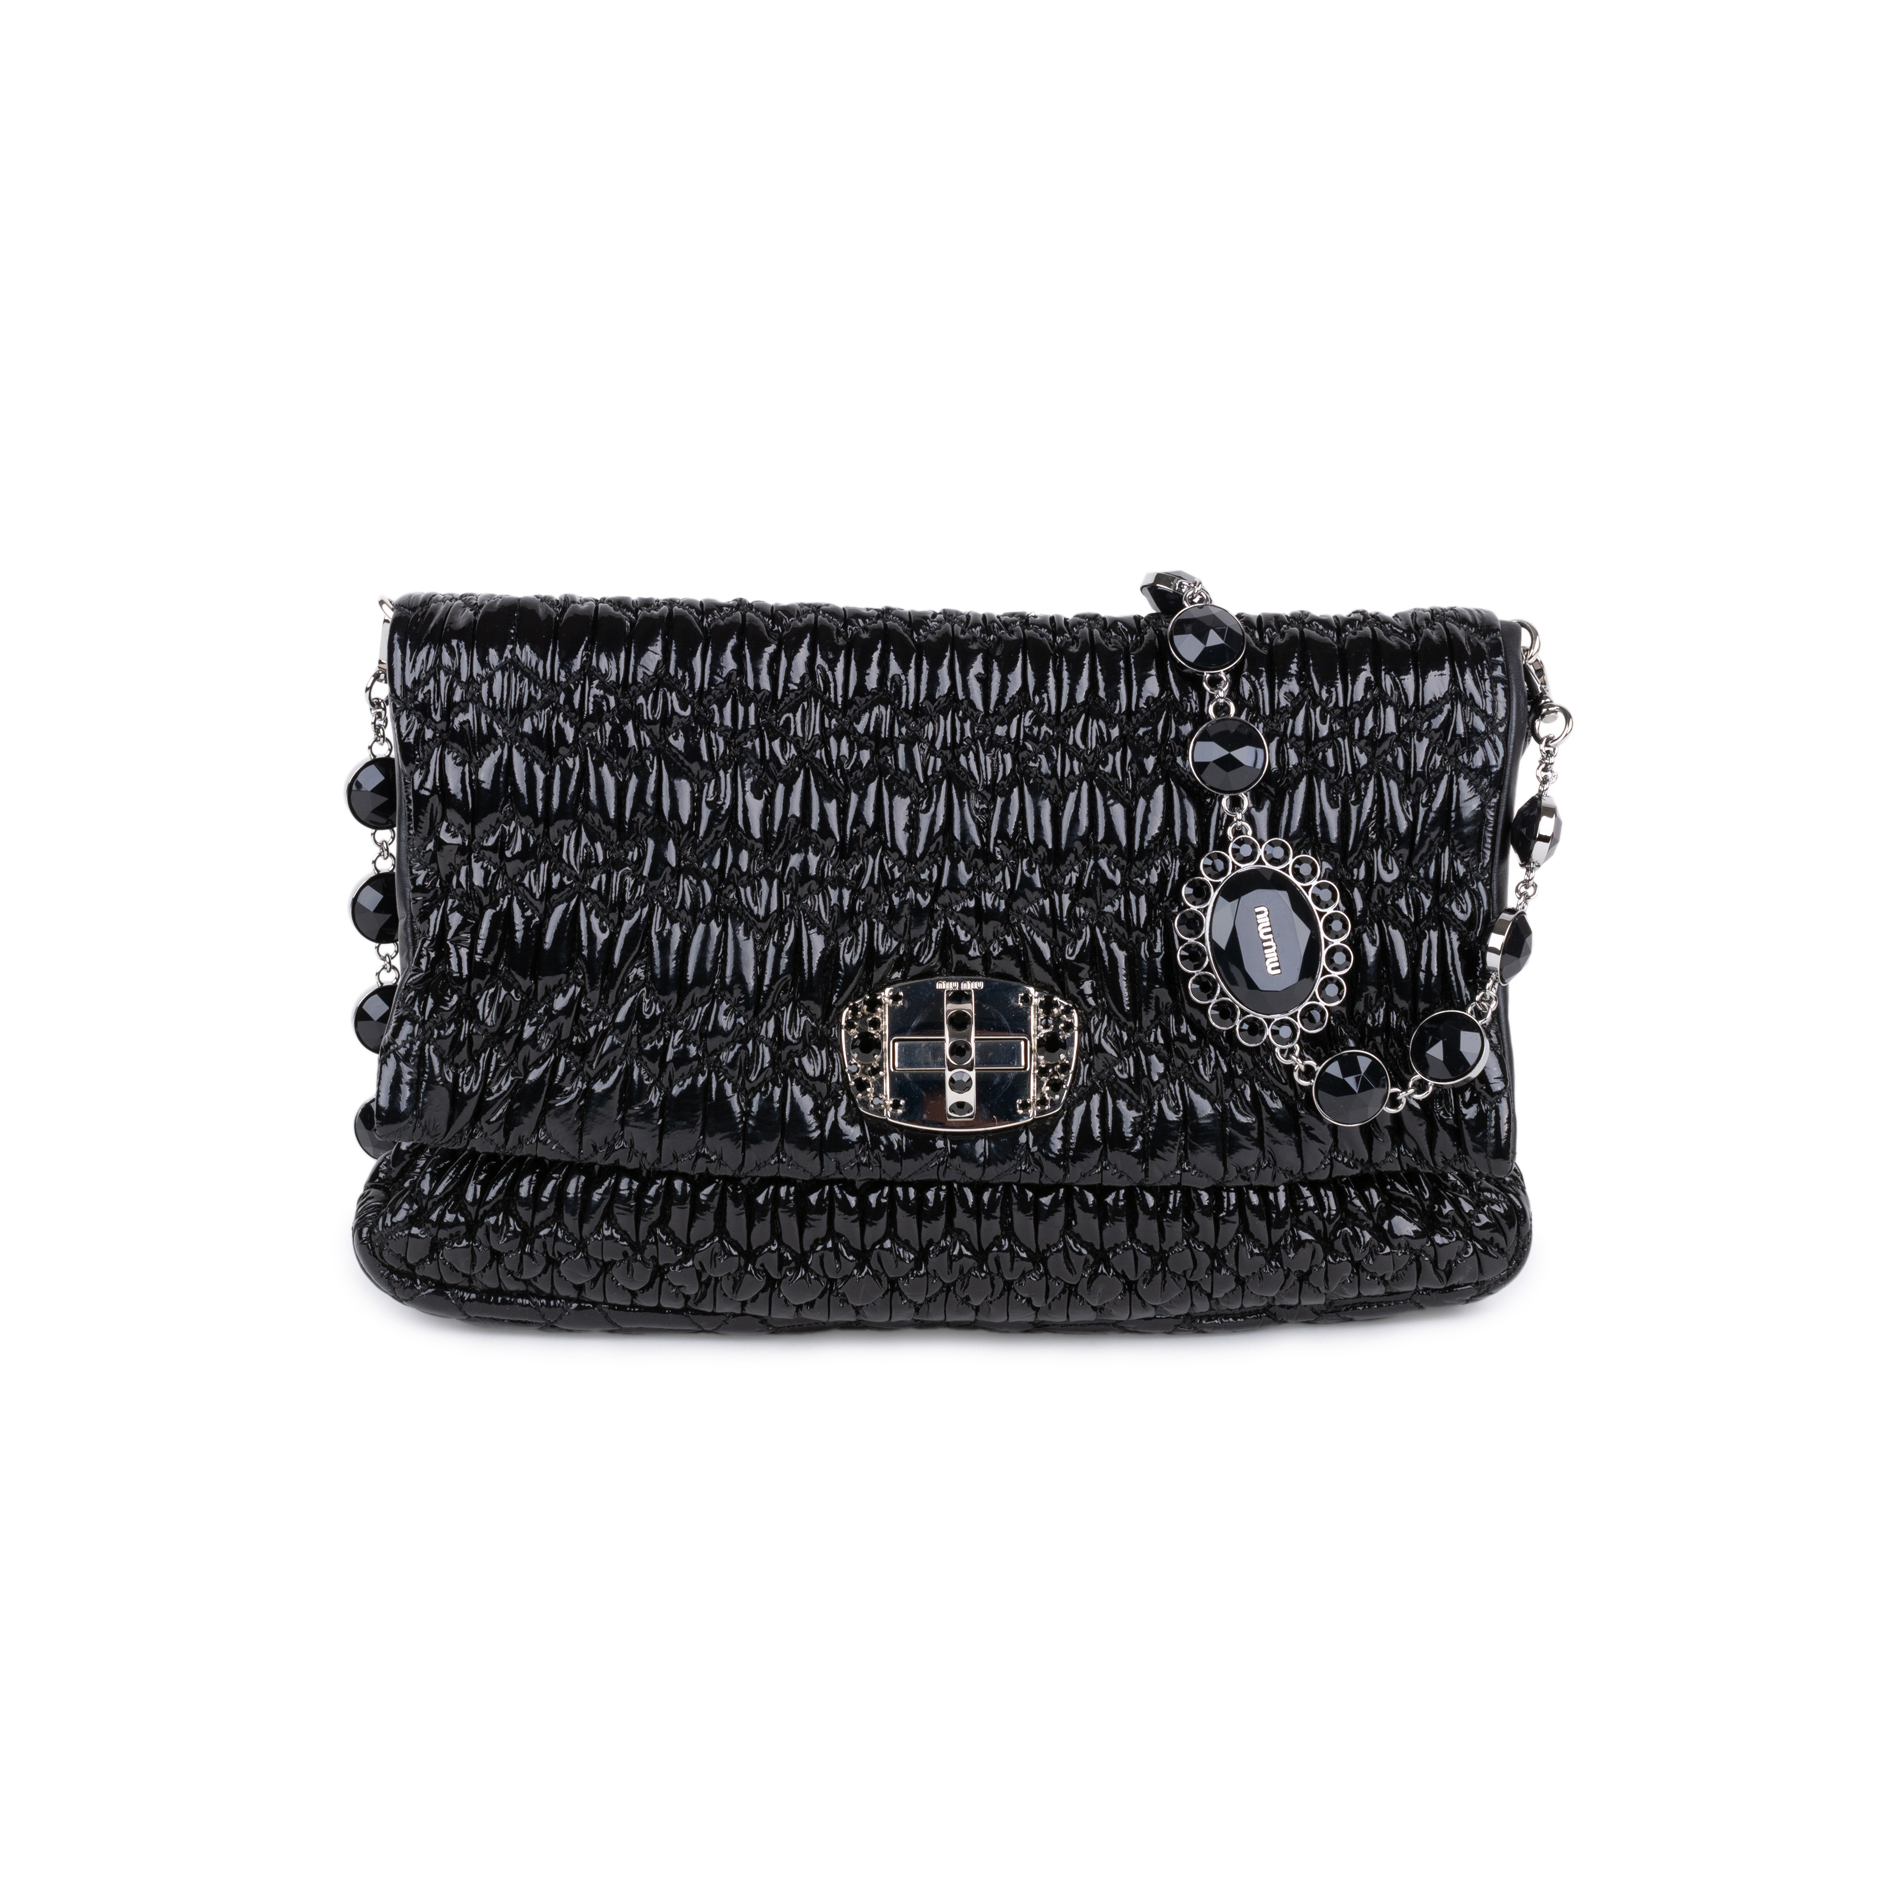 9e7f5b71f890 Authentic Second Hand Miu Miu Patent Matelasse Embellished Shoulder Clutch  (PSS-333-00063) | THE FIFTH COLLECTION